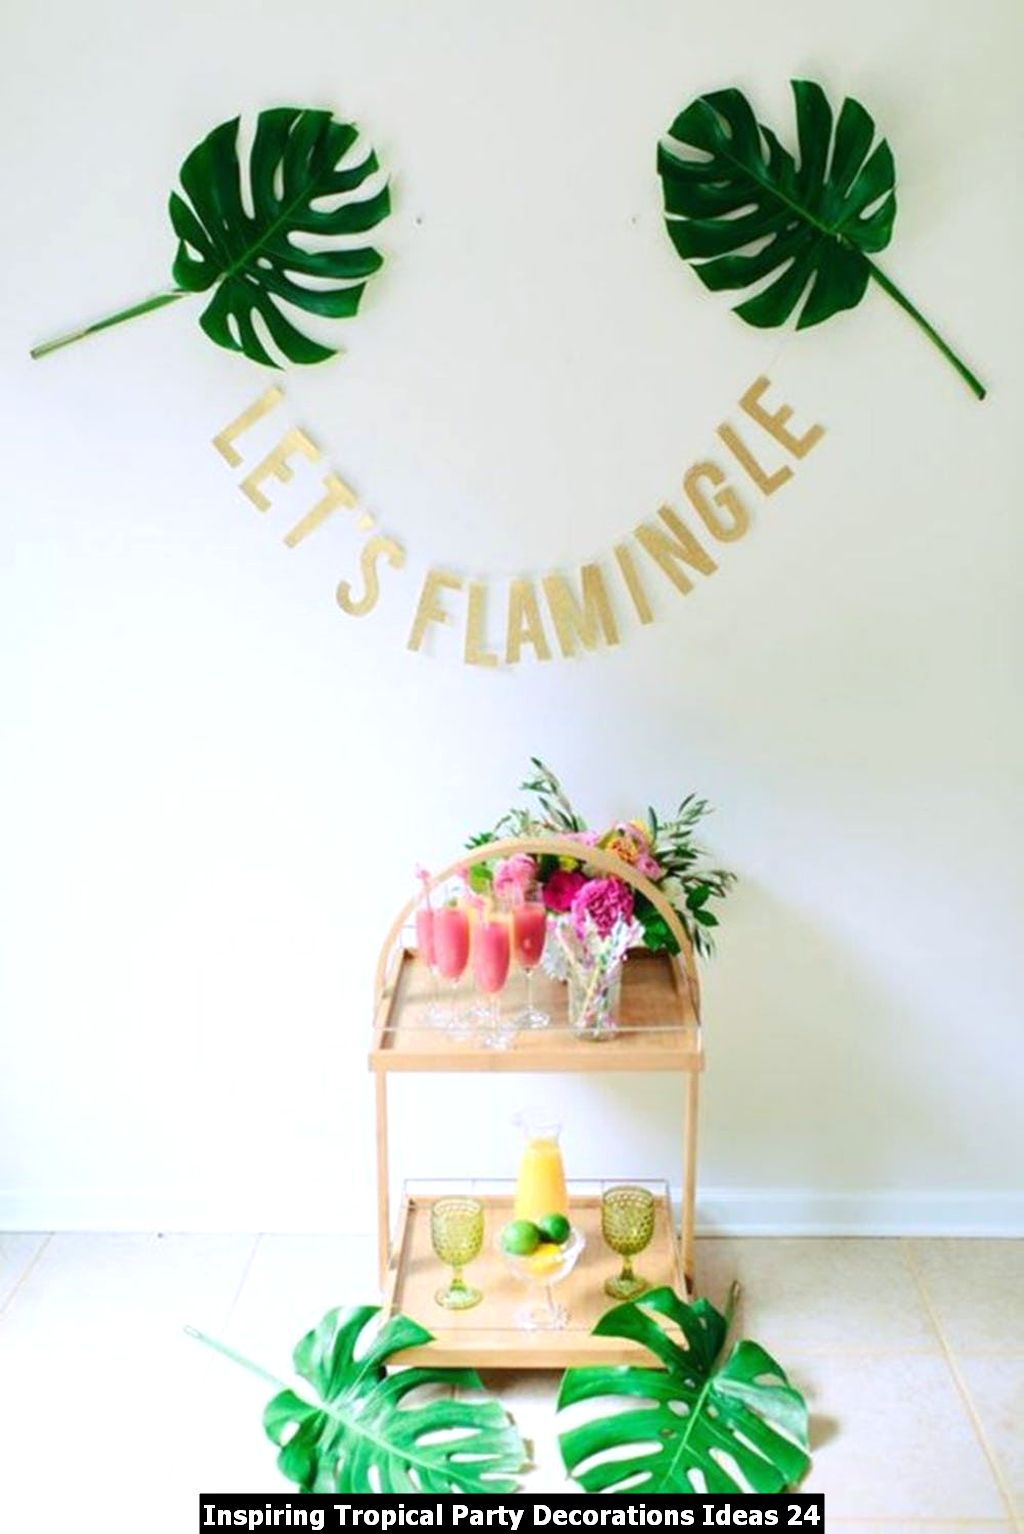 Inspiring Tropical Party Decorations Ideas 24